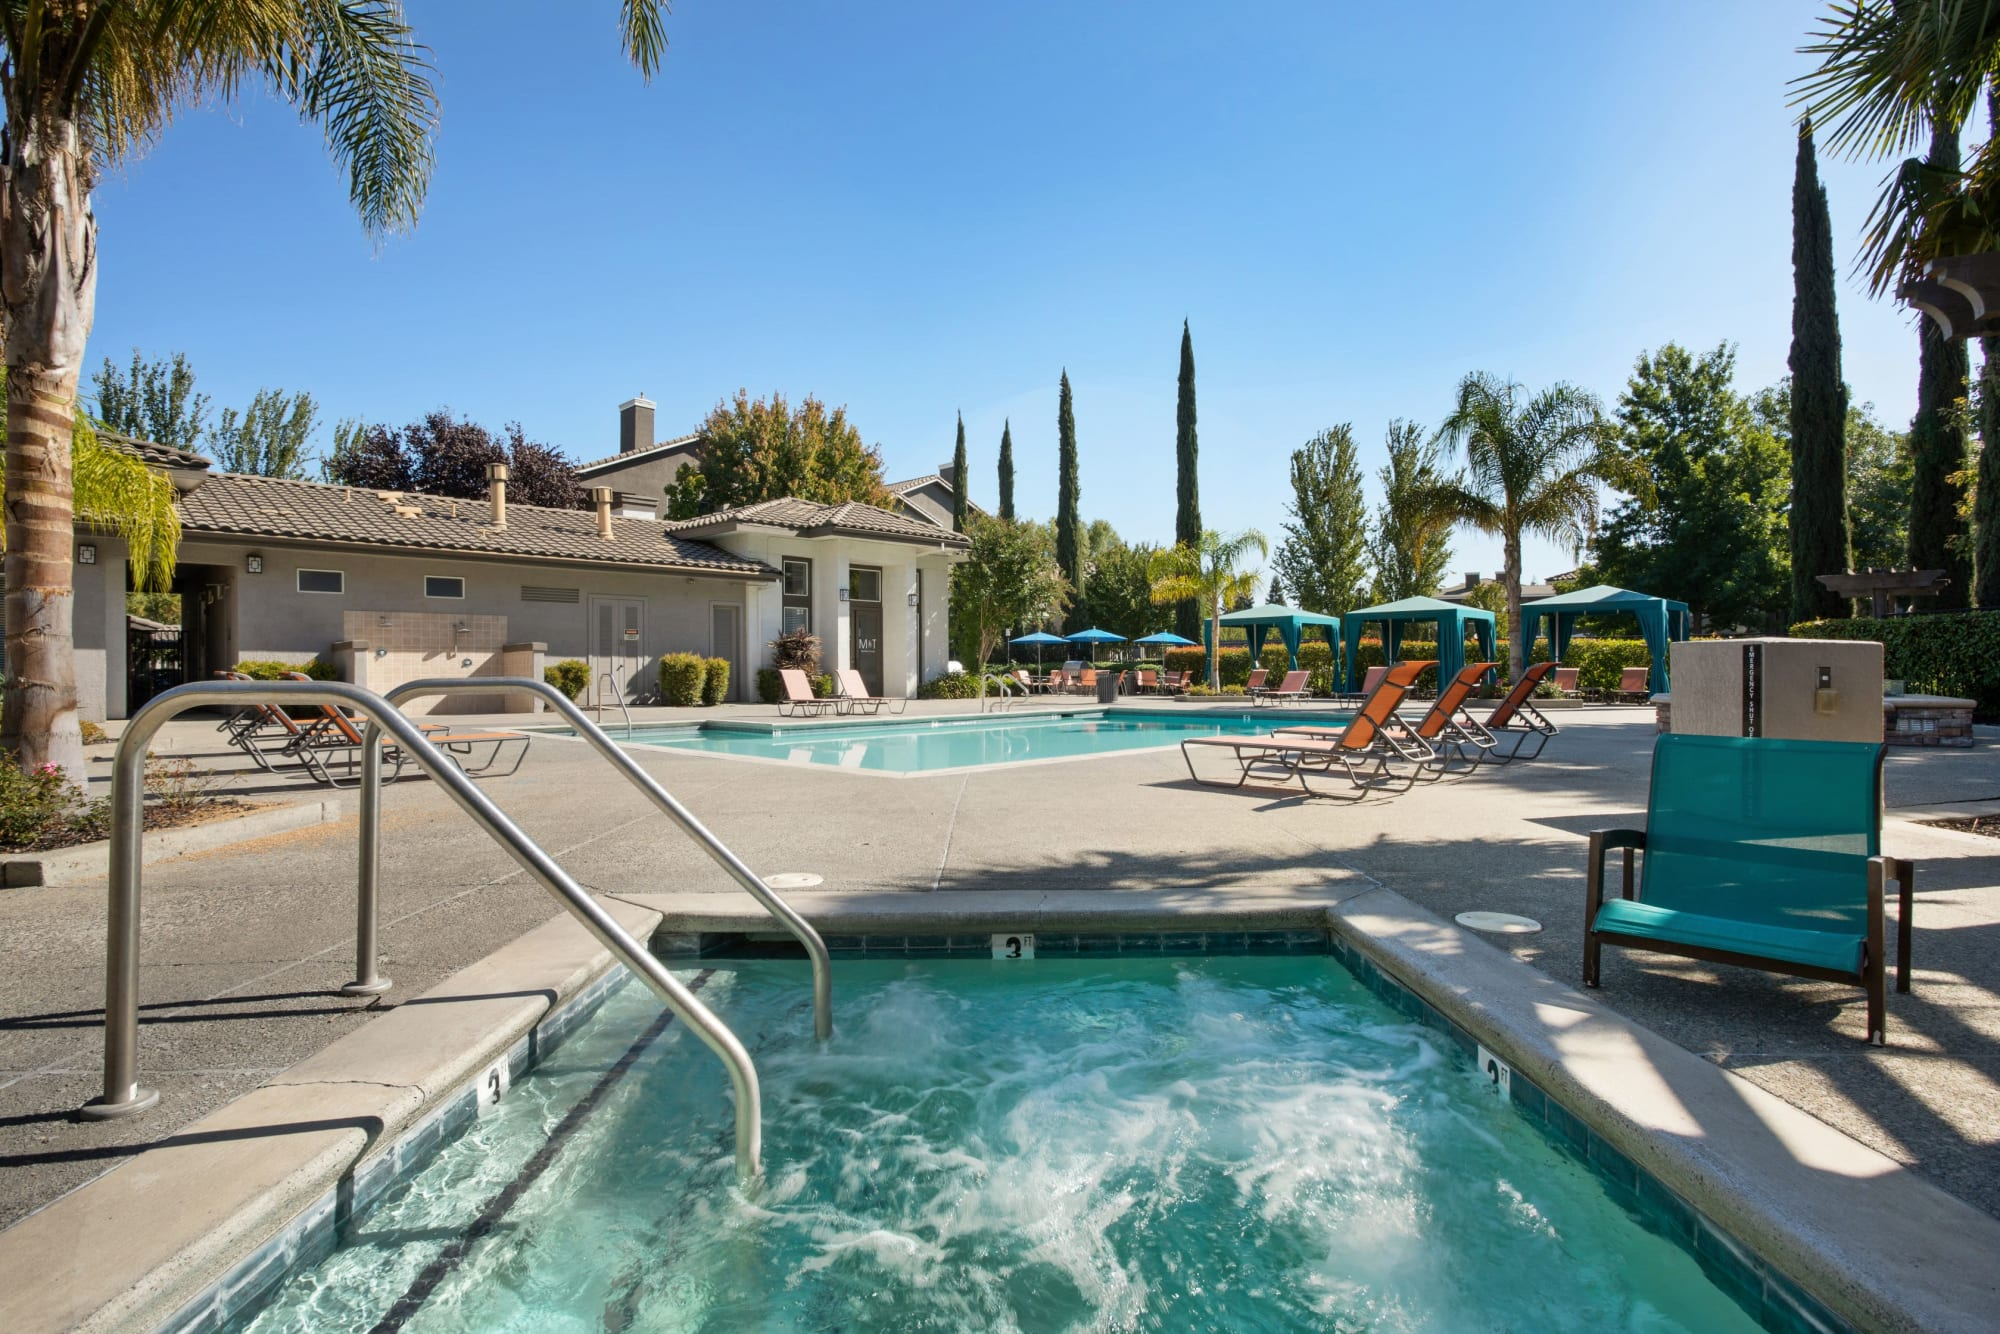 The pool area with cabanas at Miramonte and Trovas in Sacramento, California